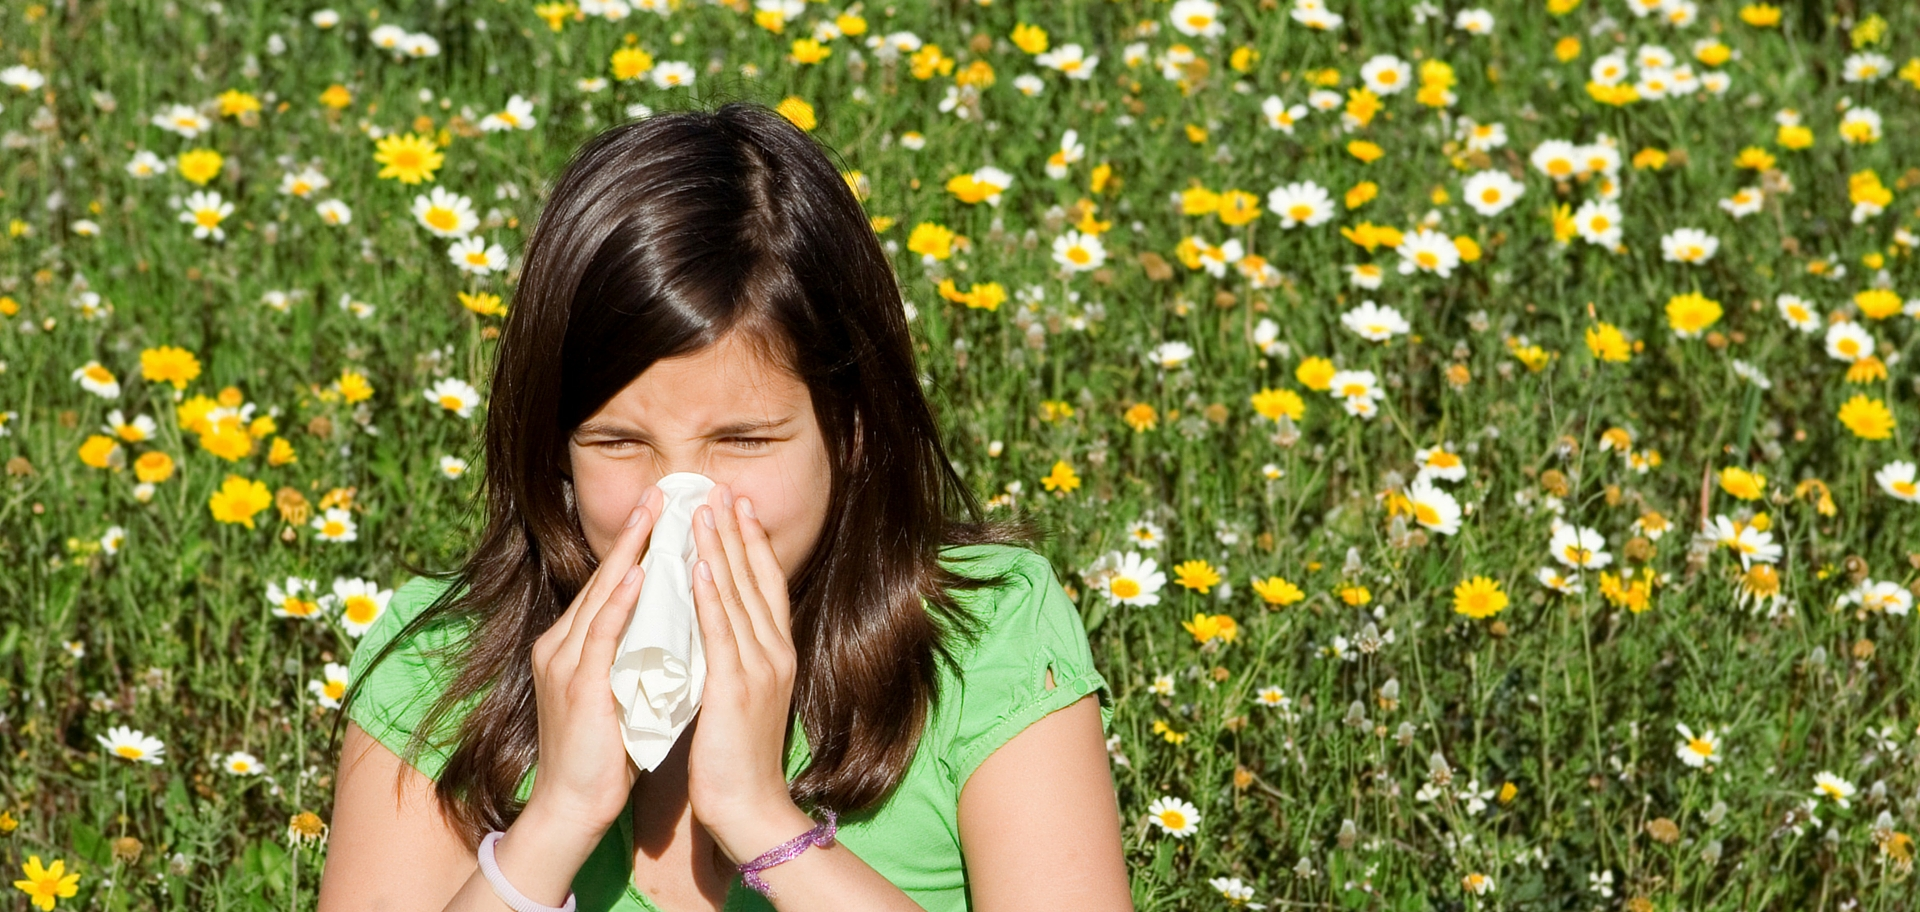 SPRING HAS SPRUNG: HAVE YOUR ALLERGY SYMPTOMS?